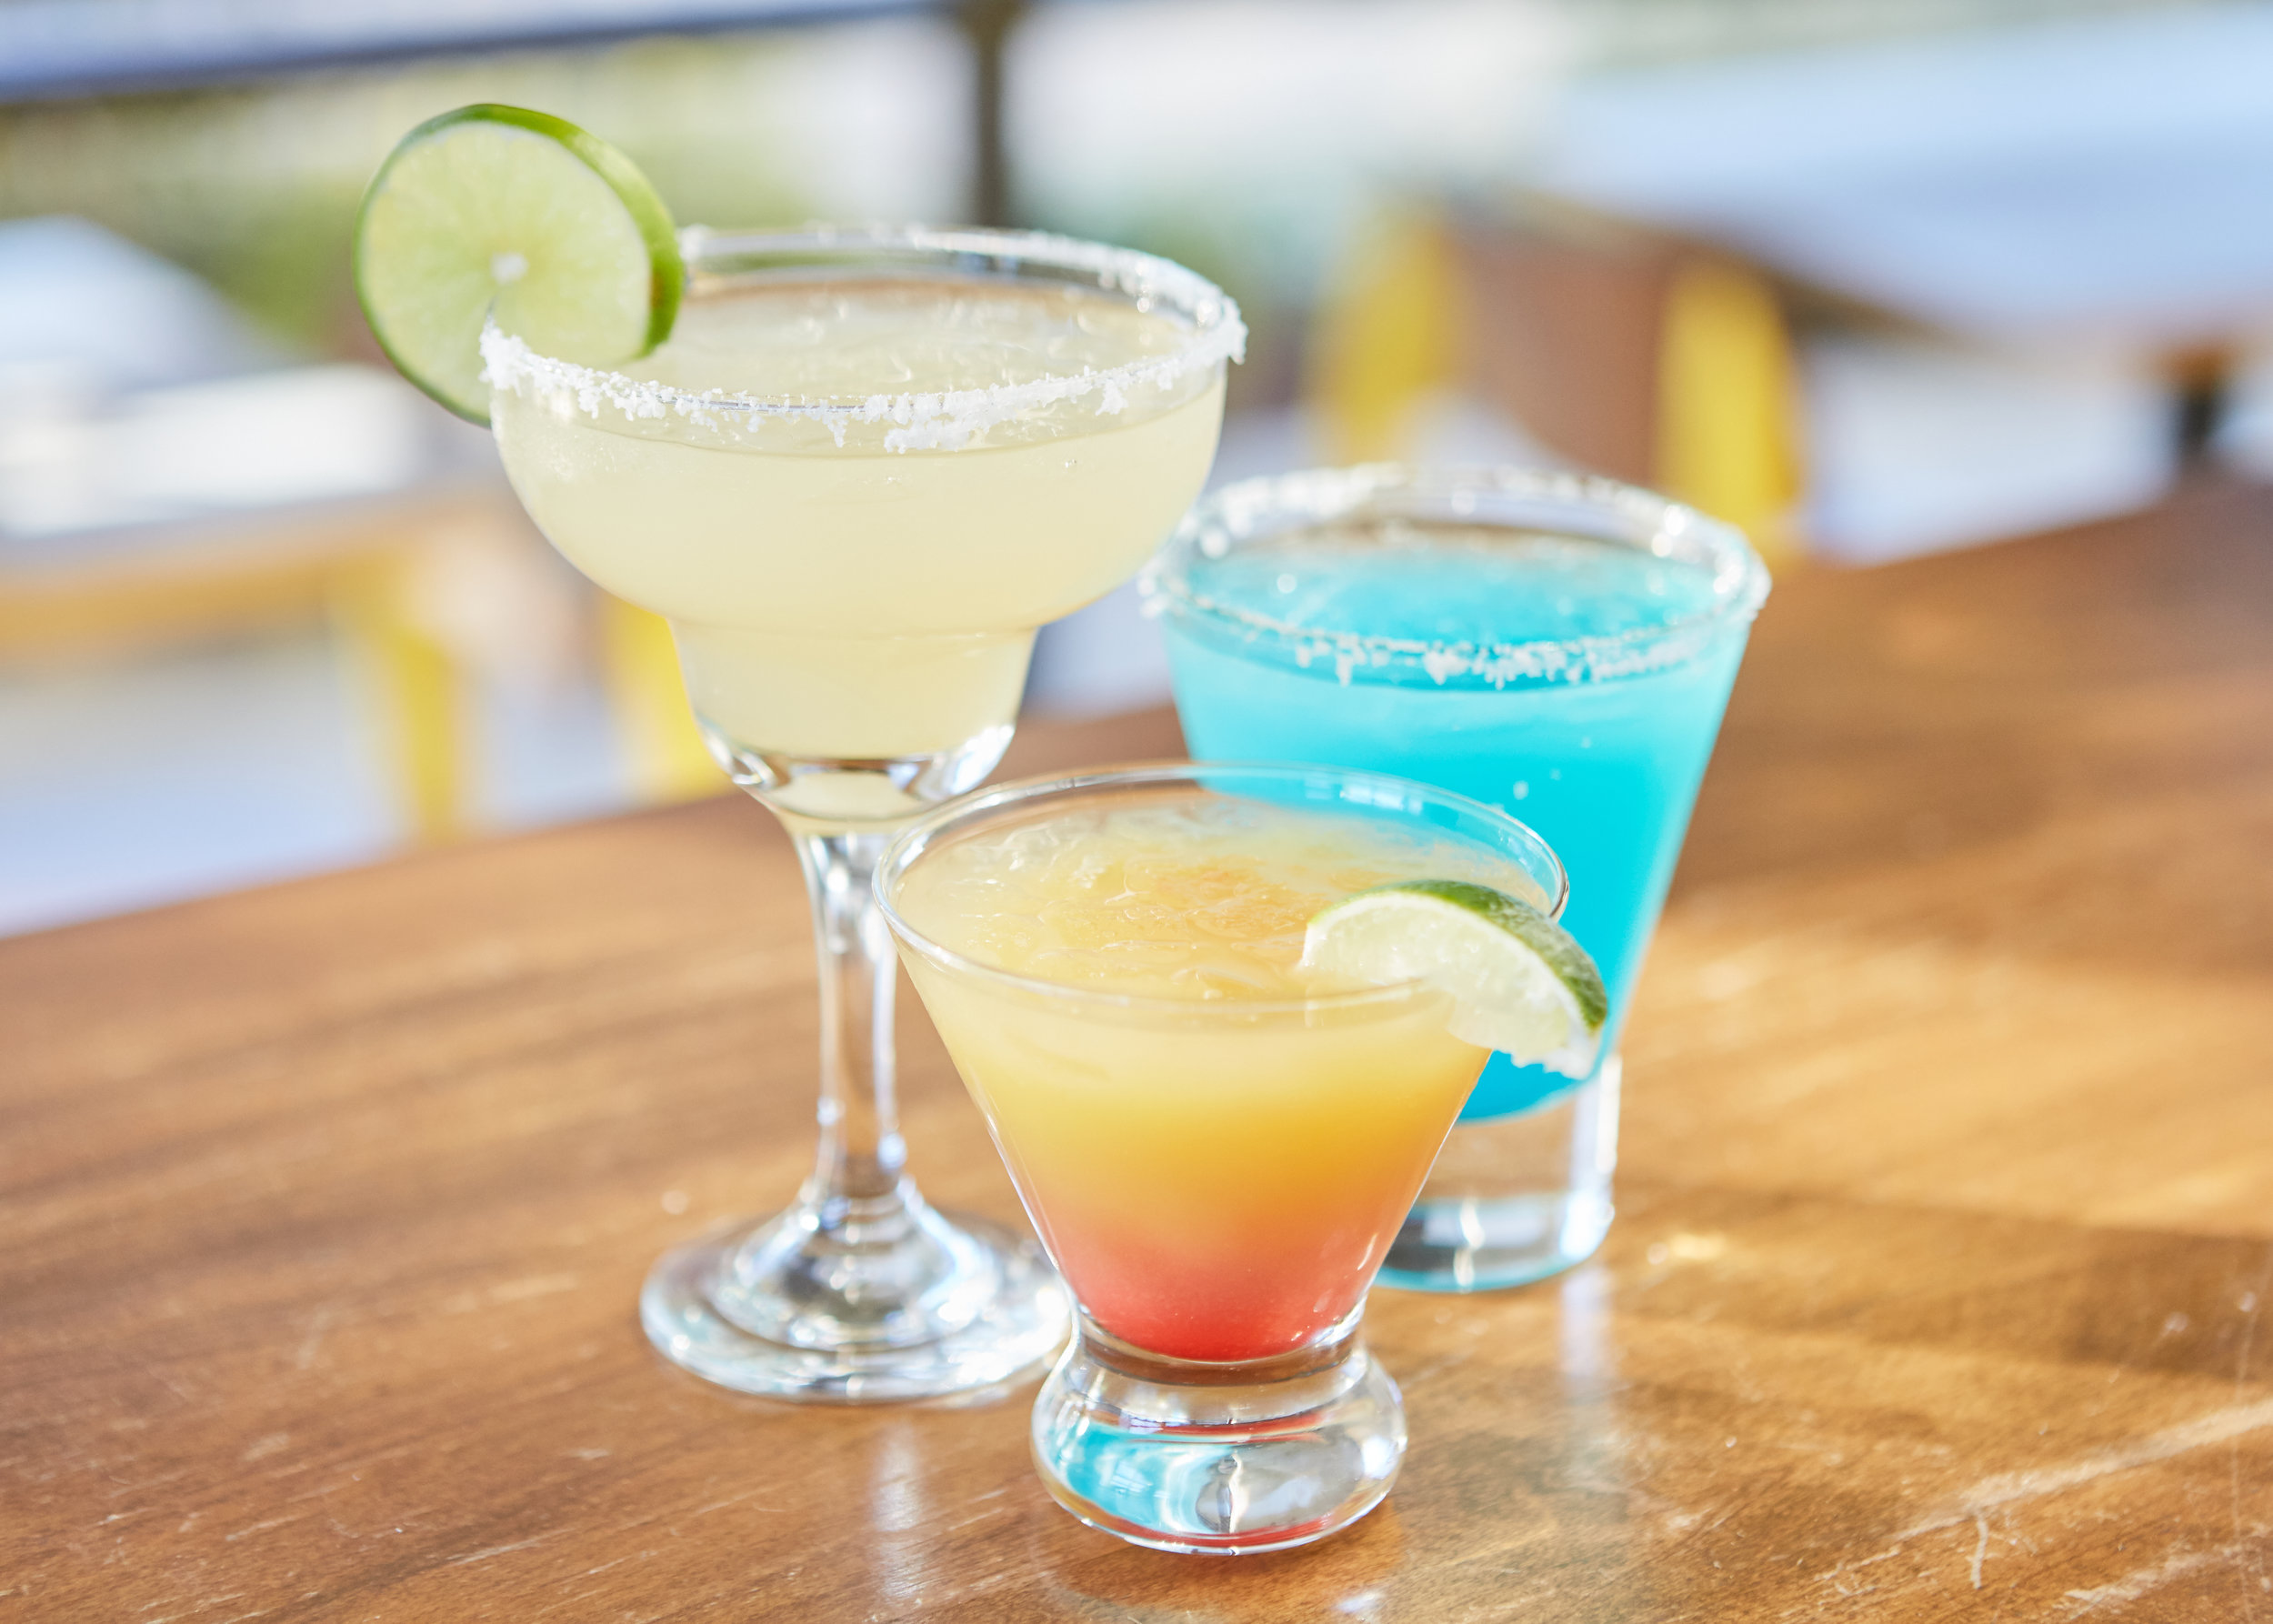 DRINKS - We offer alcoholic beverages including mixed drinks and craft beers, plus non-alcoholic drinks like iced tea, lemonade, and craft soft drinksSelection varies by location